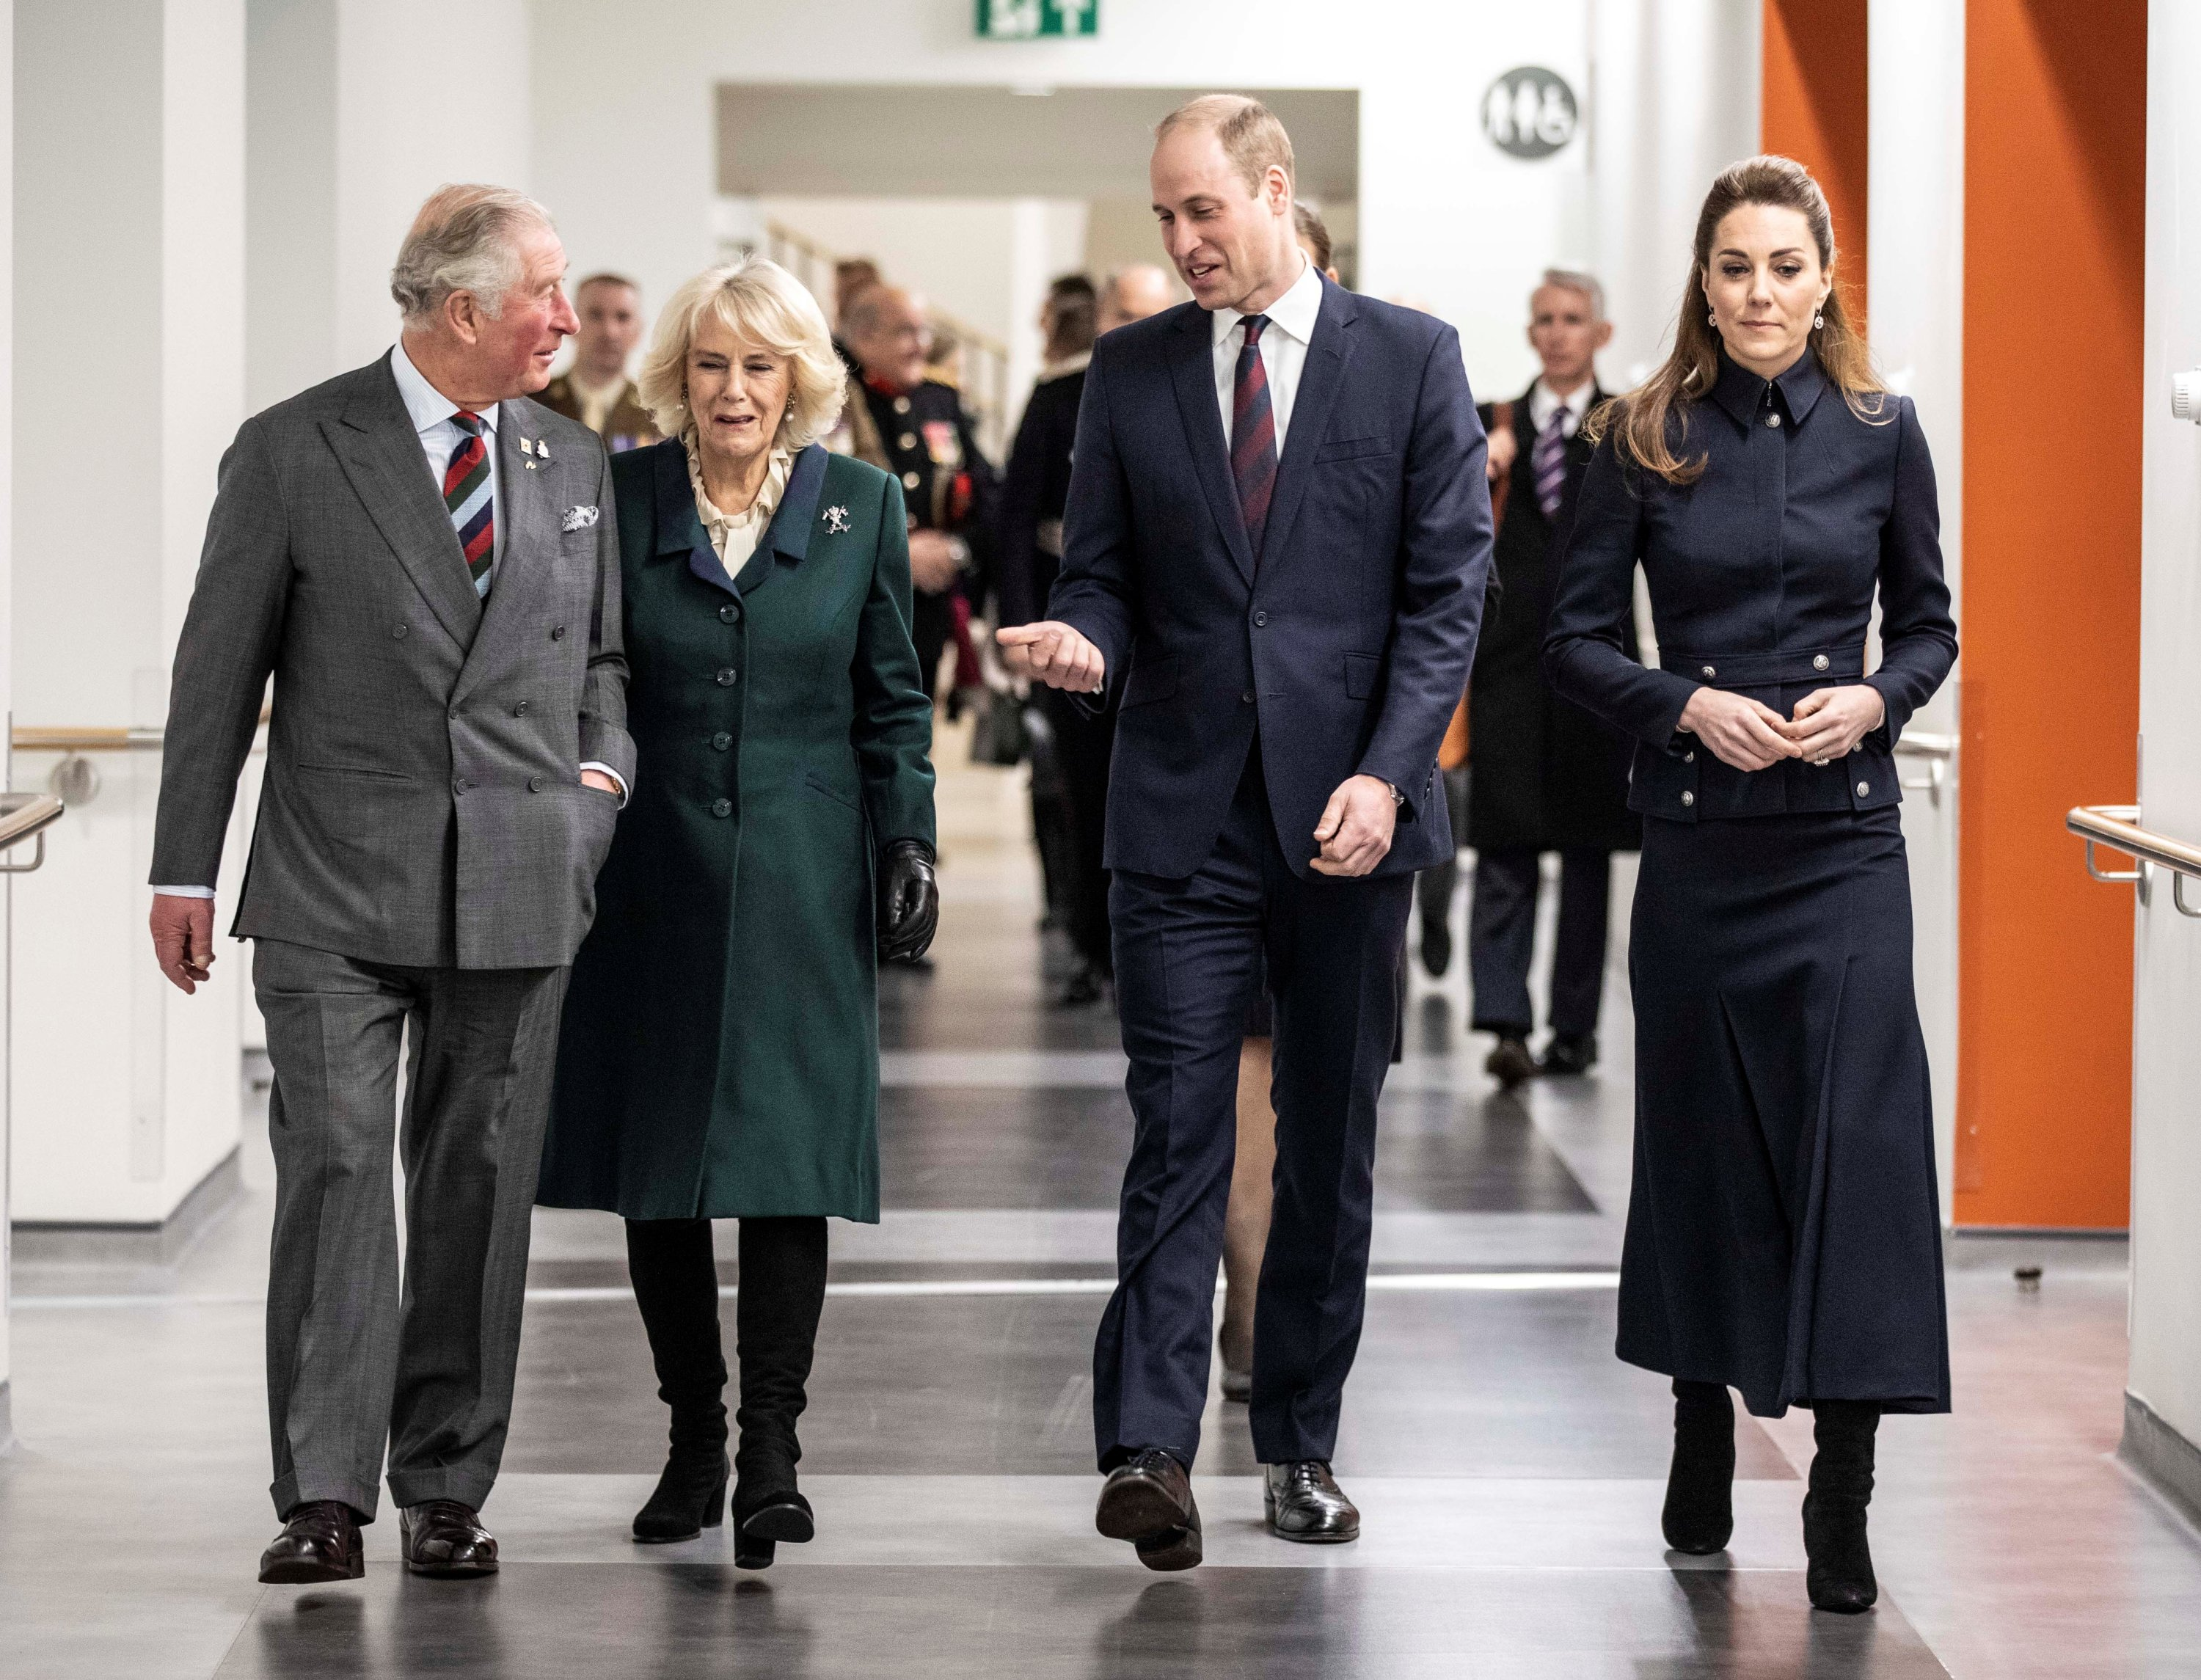 Britain's Prince Charles and Camilla, Duchess of Cornwall, and Prince William, and Catherine, Duchess of Cambridge, are seen during a joint visit to the Defence Medical Rehabilitation Center (DMRC) in Nottinghamshire, Britain, February 11, 2020. (REUTERS Photo)